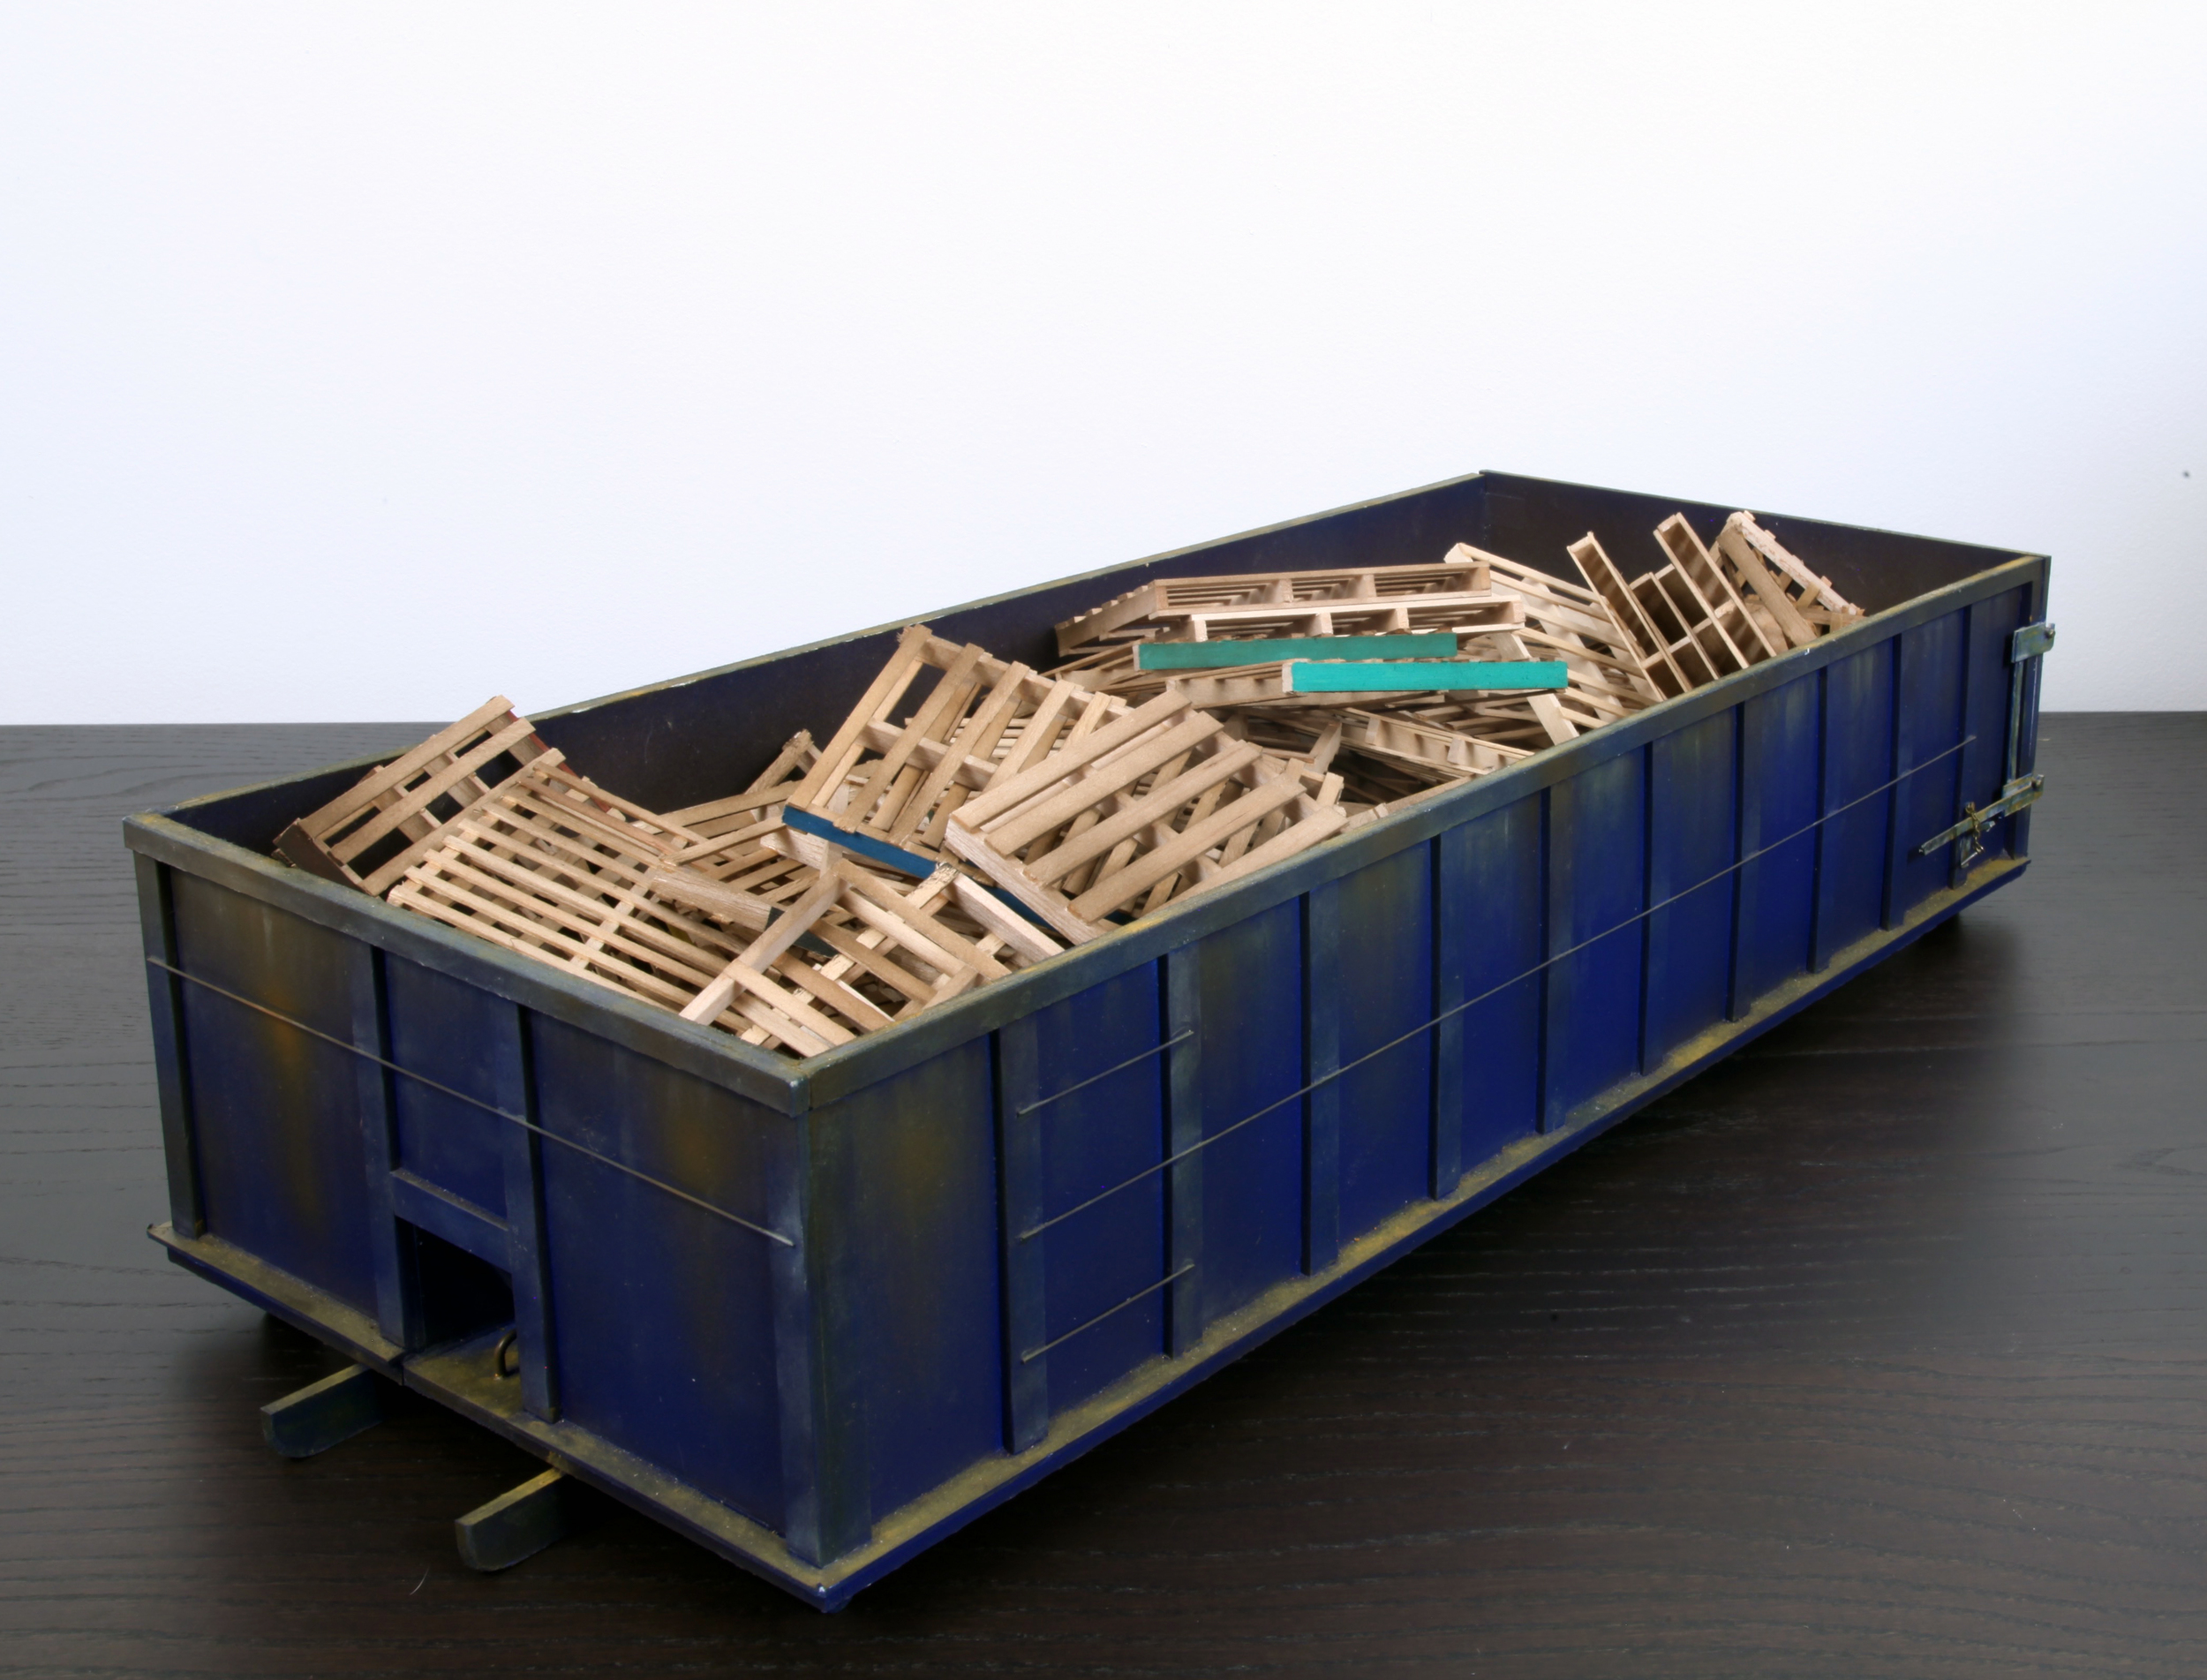 Blue 30 yard Dumpster with 55 pallets - SOLD